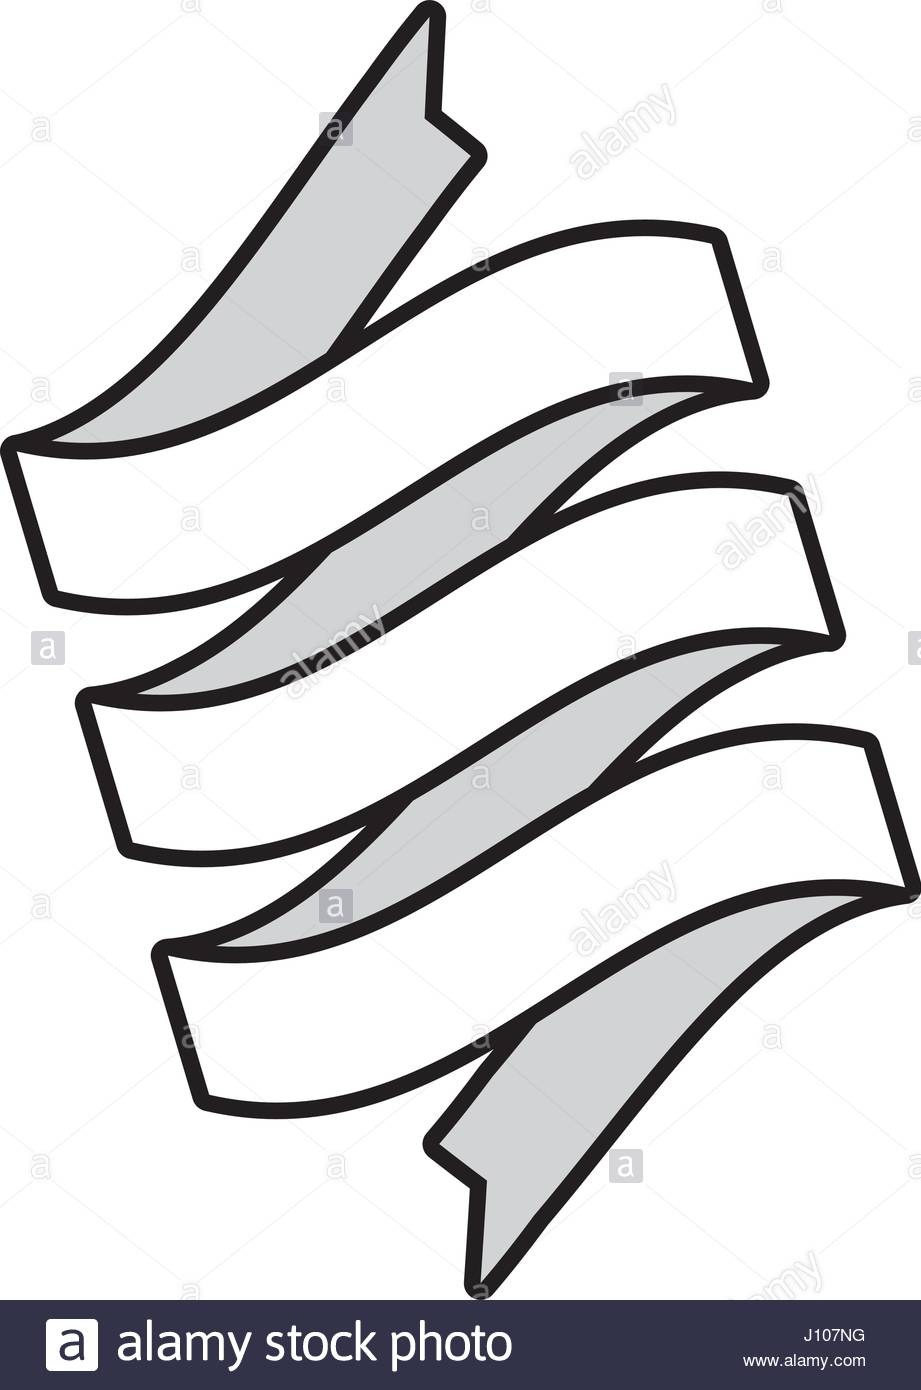 921x1390 Ribbon Banner Decoration Icon Outline Stock Vector Art